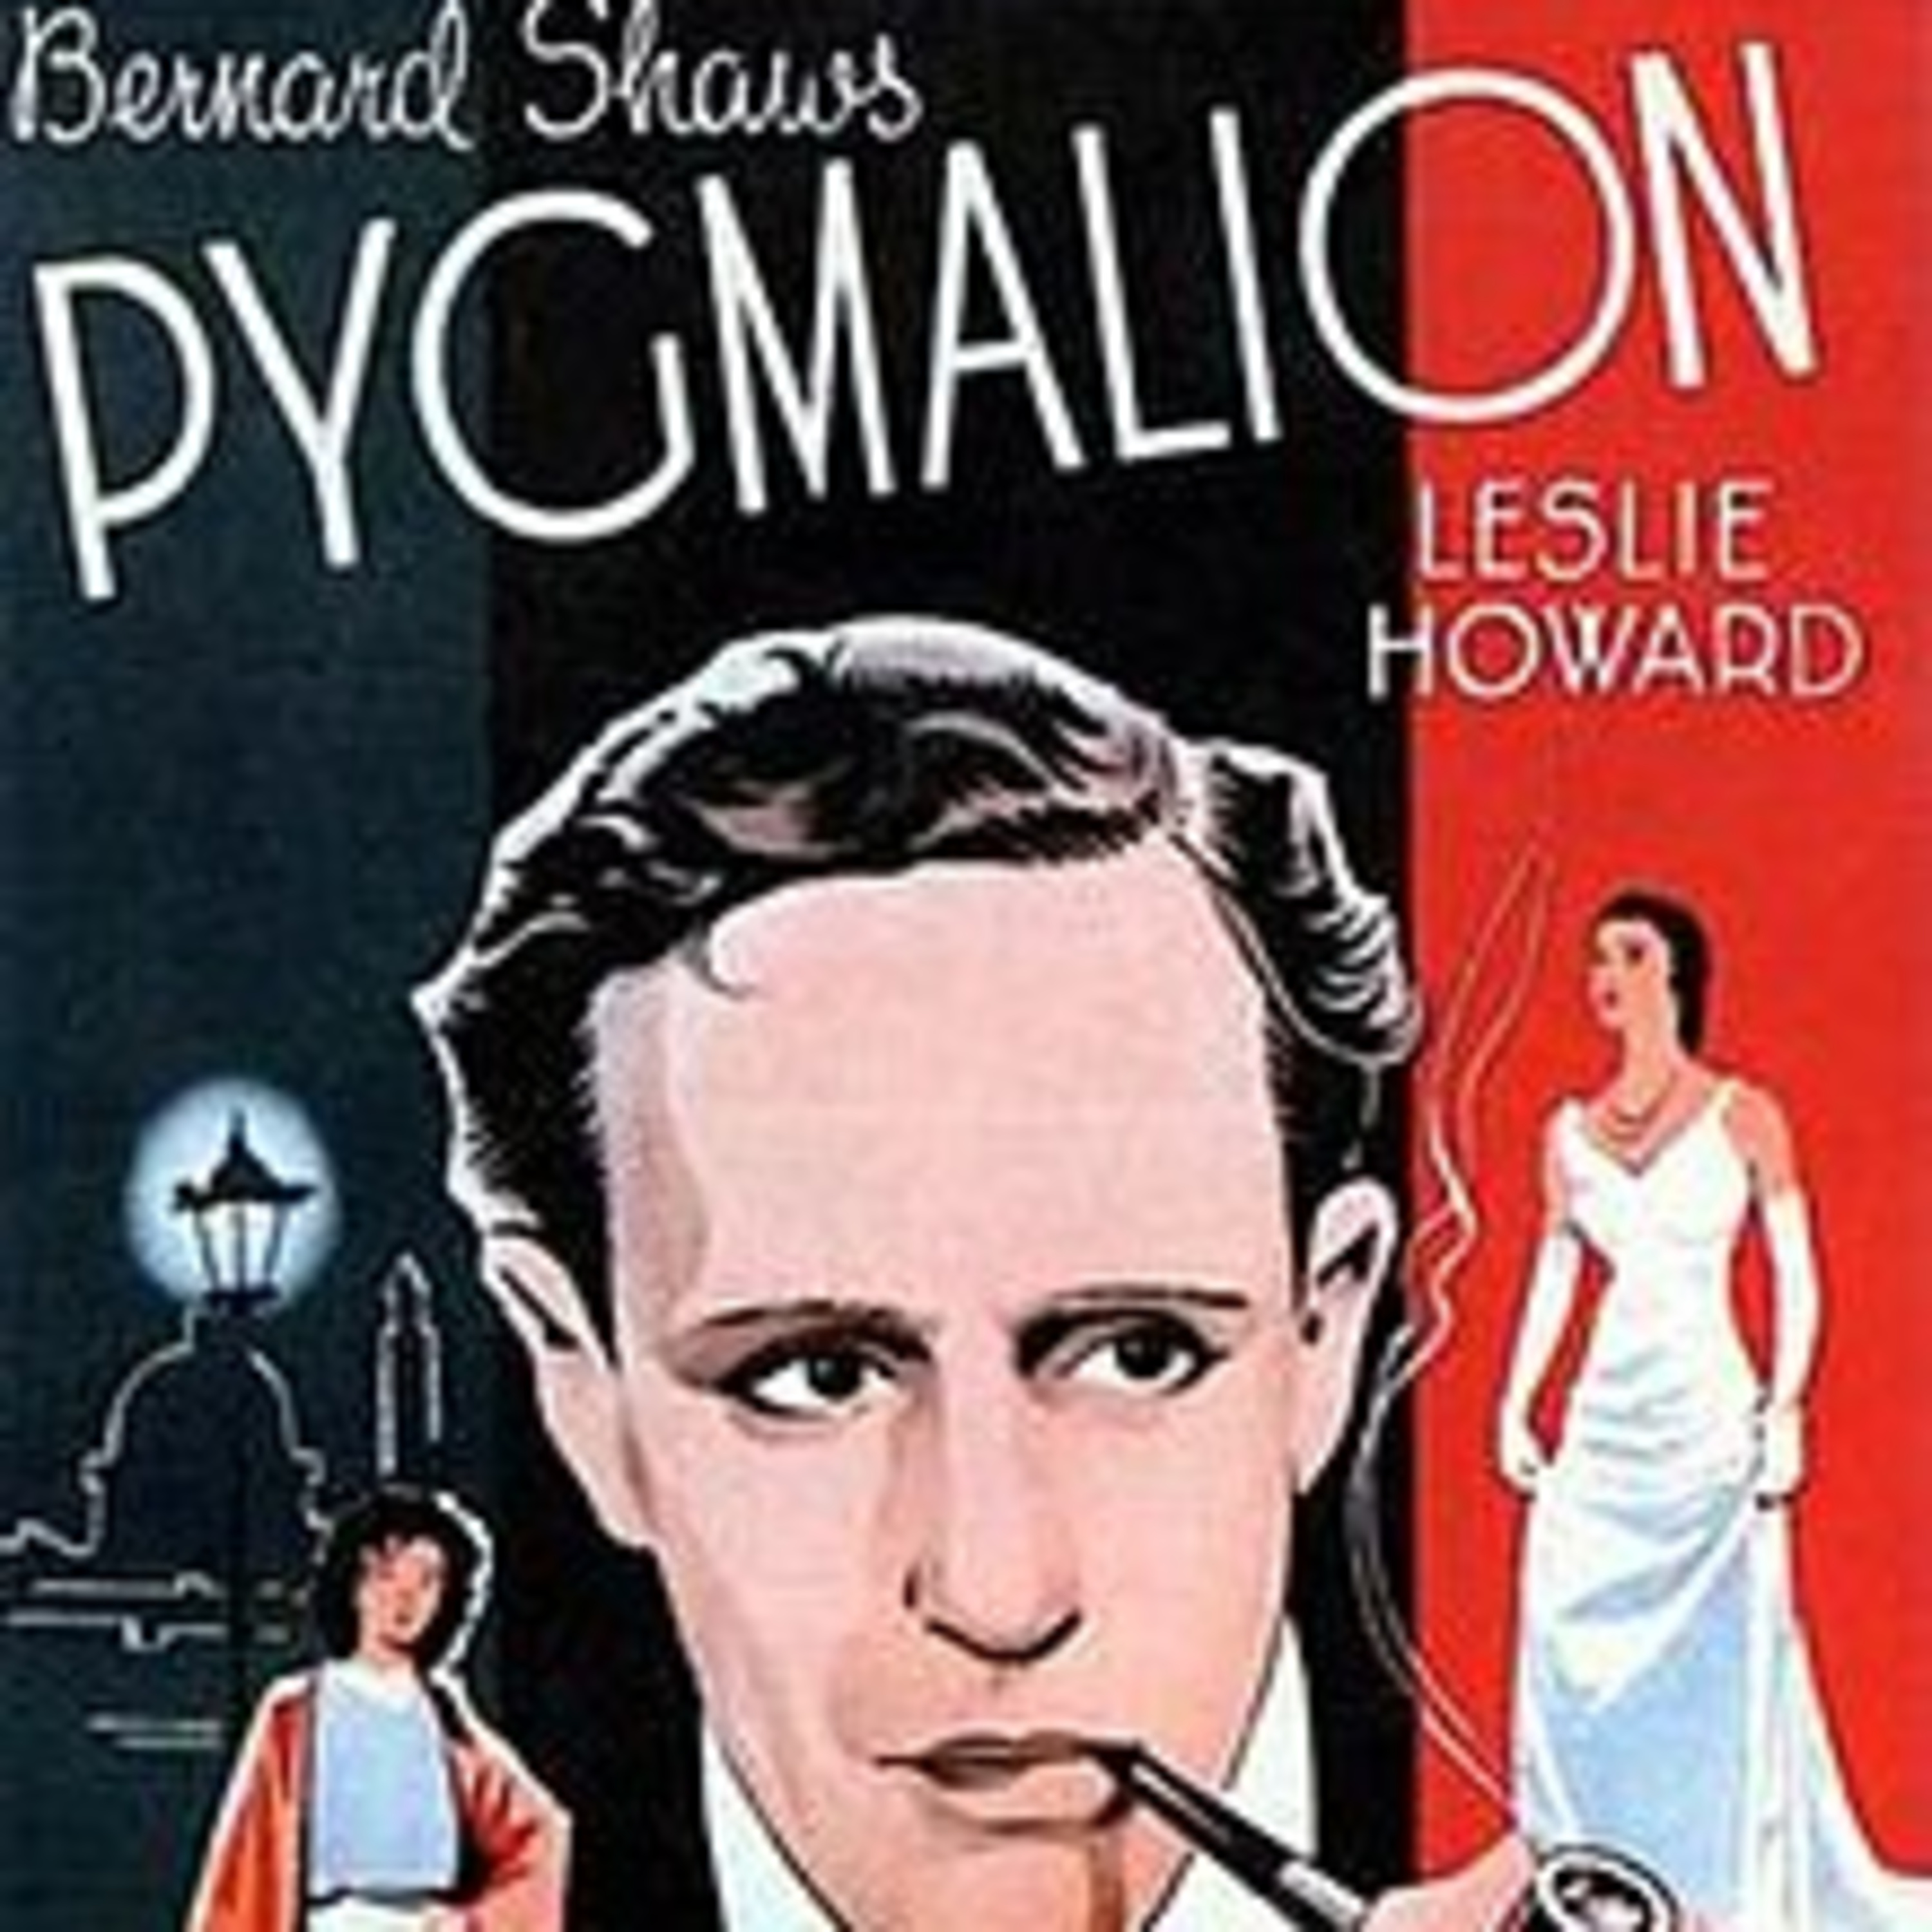 Pygmalion - Starring Jean Arthur & Brian Aherne - All-Star Radio Dramas of Classic Films - Lux Radio Theater